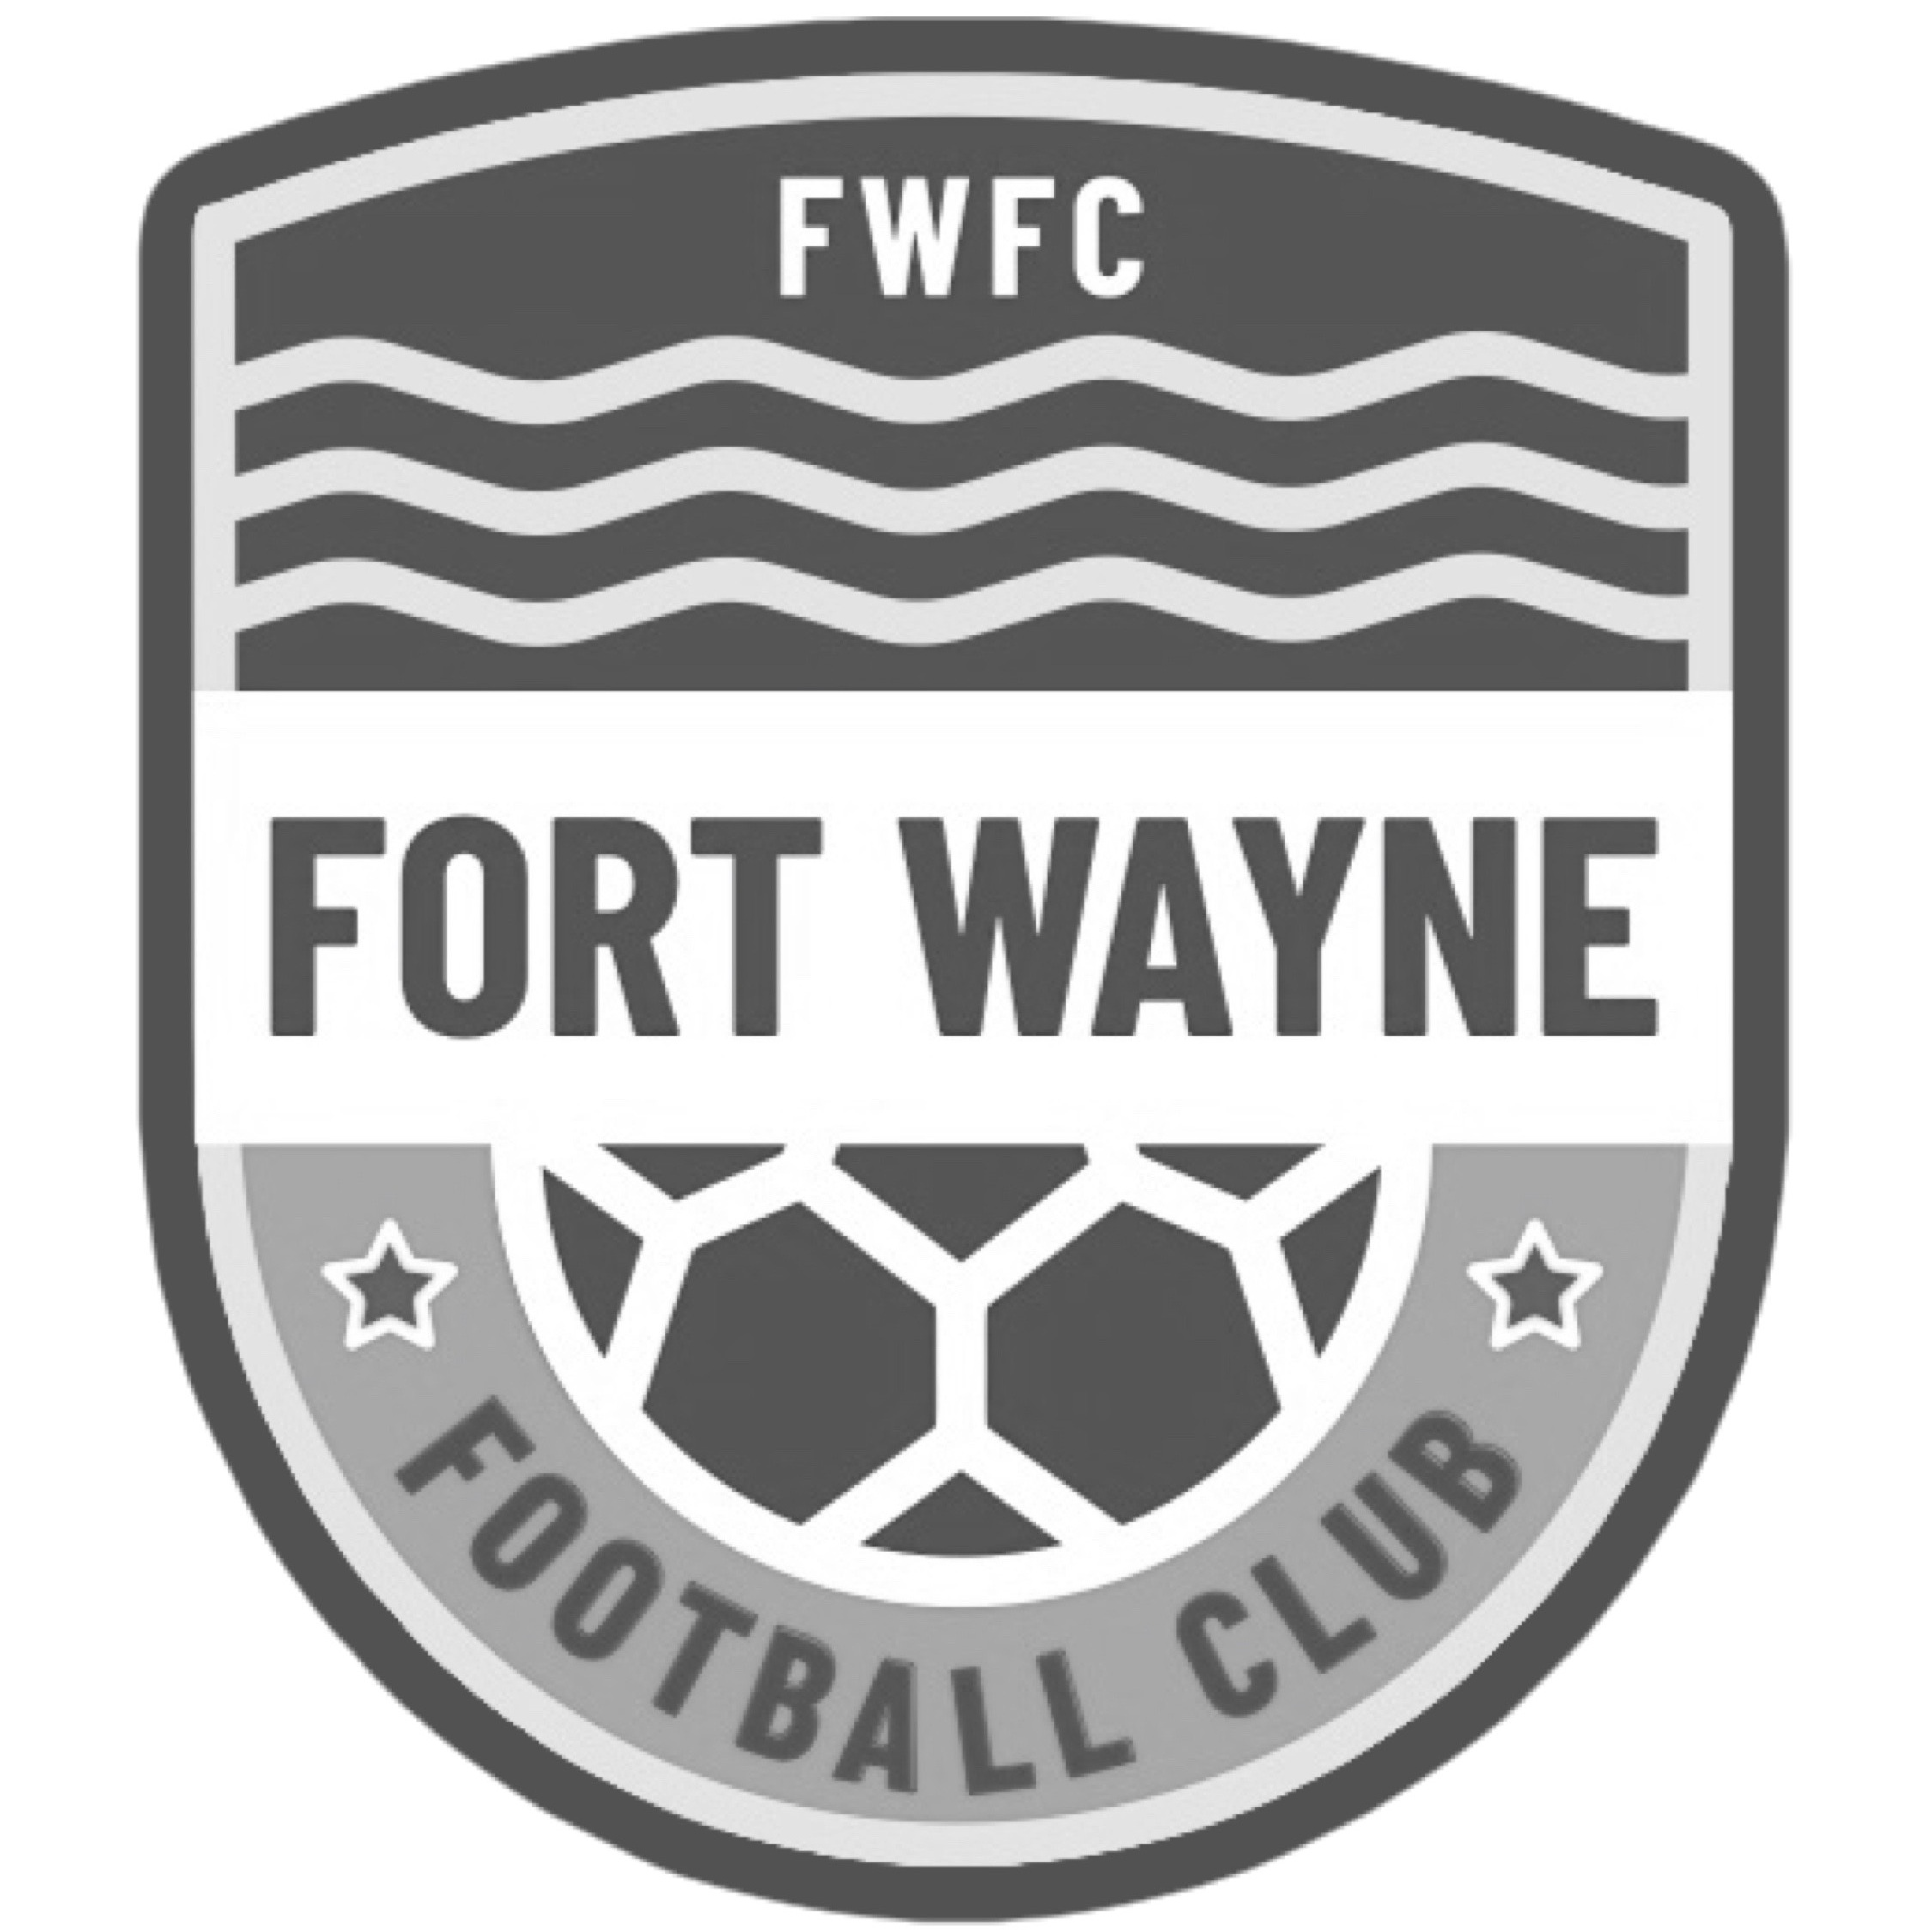 TBD - Fort Wayne FC Members LiaisonManages Supporter, Fanatic and VIP Package Members. Communicates Activities and Events for all Fort Wayne FC Members via email. Manages contacts to VIP guests to ensure total guest satisfaction.